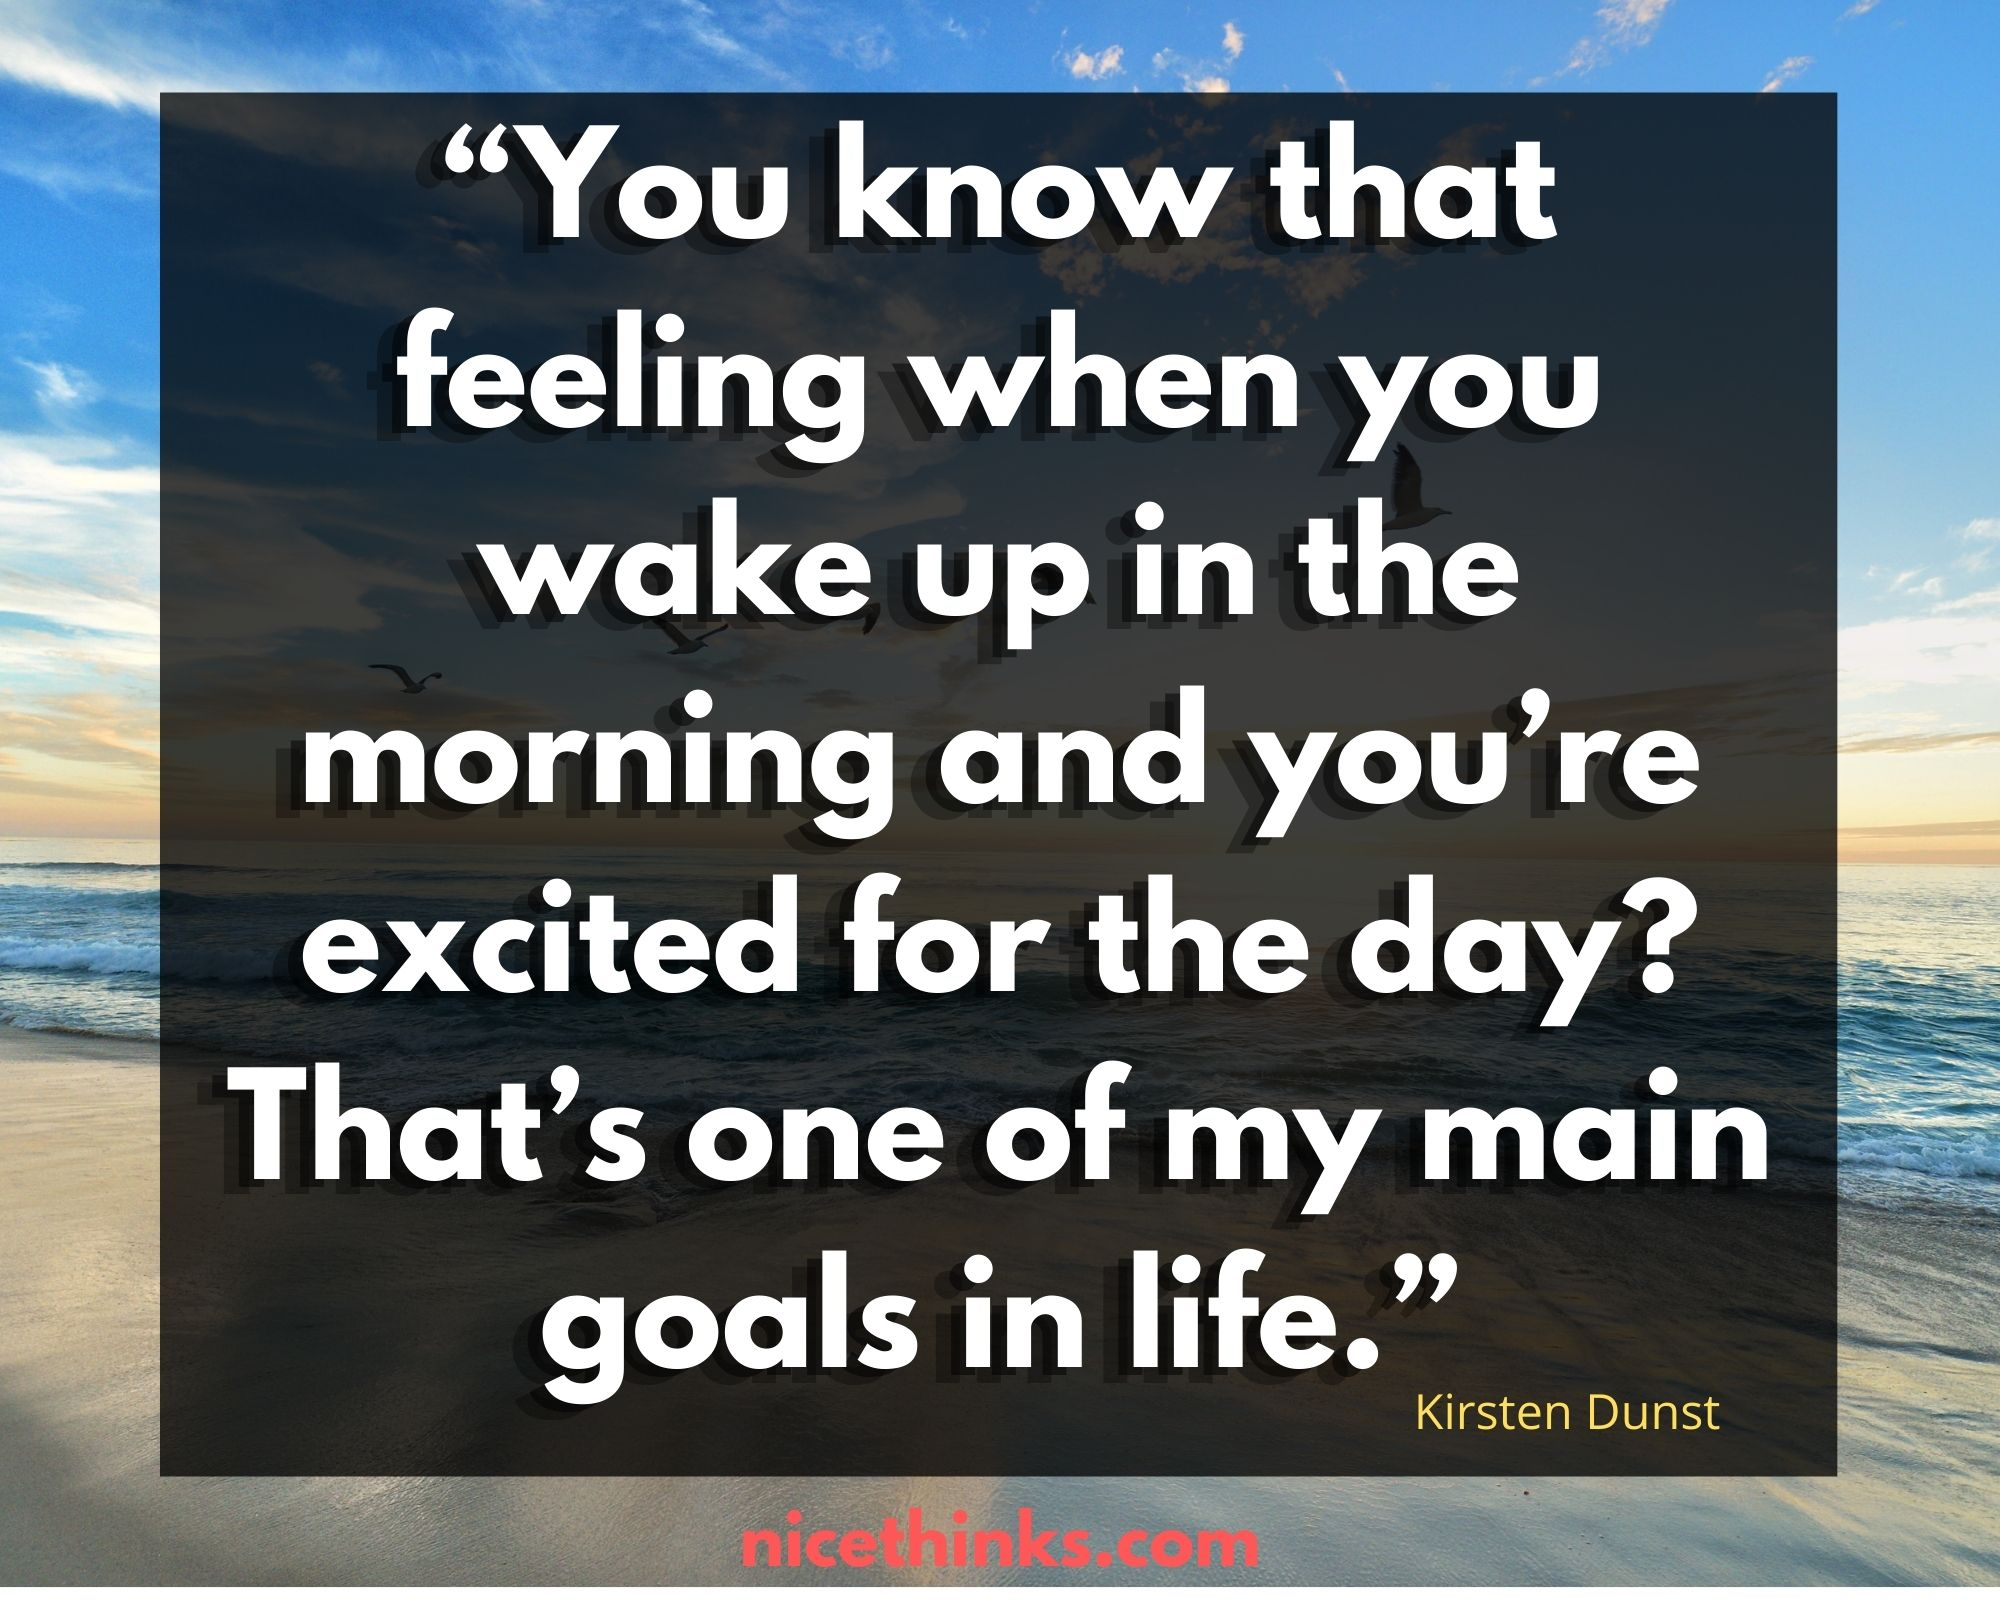 Quotes by Kirsten Dunst